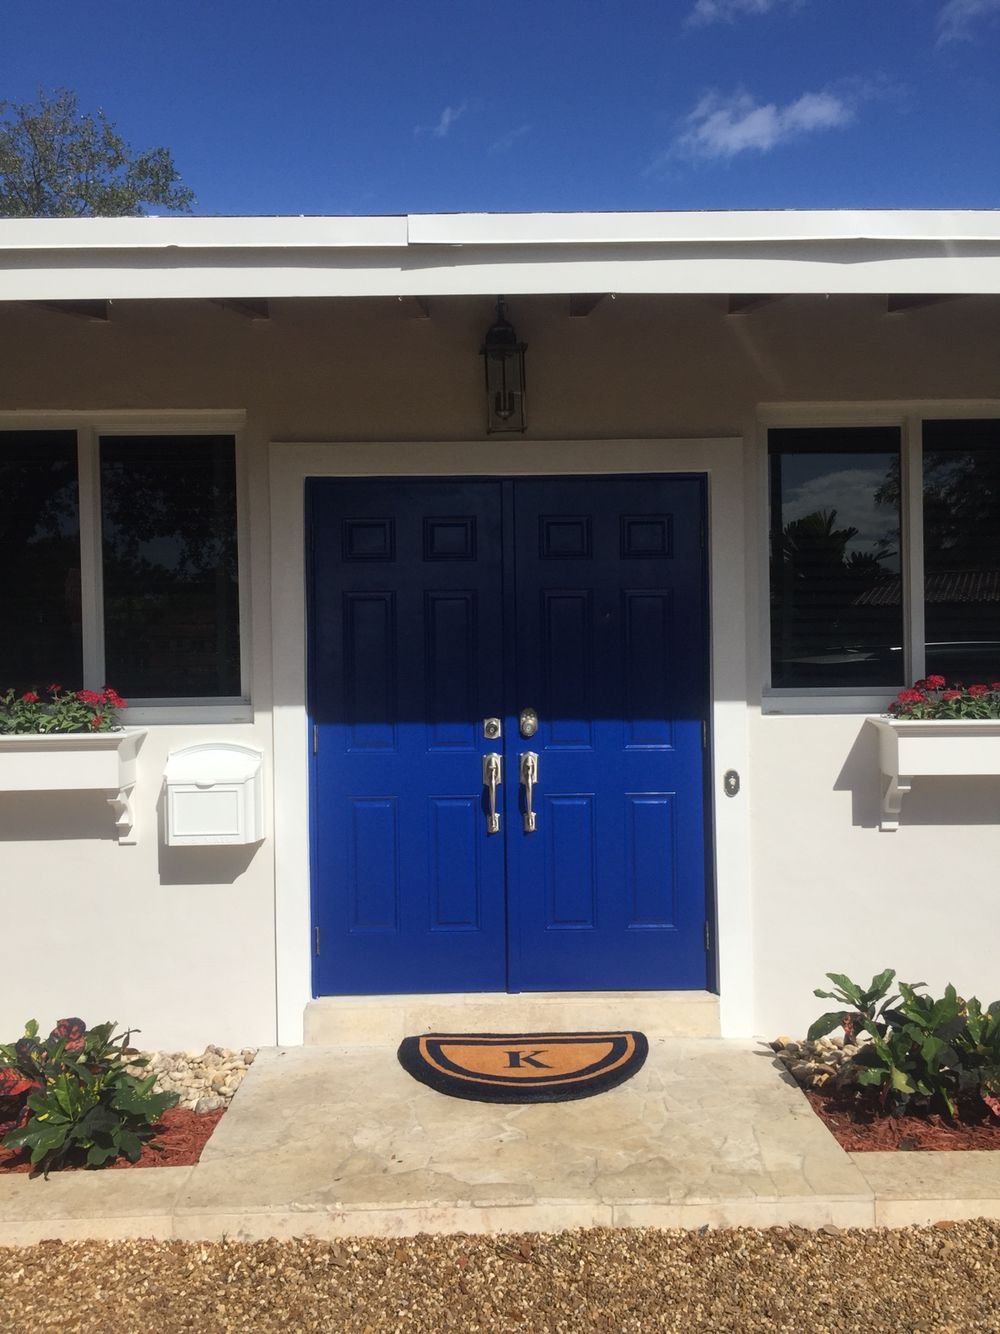 Our Front Door We Decided On Sherwin Williams Honorable Blue And Are Thrilled With The Result Front Door Paint Colors Blue Front Door Painted Front Doors